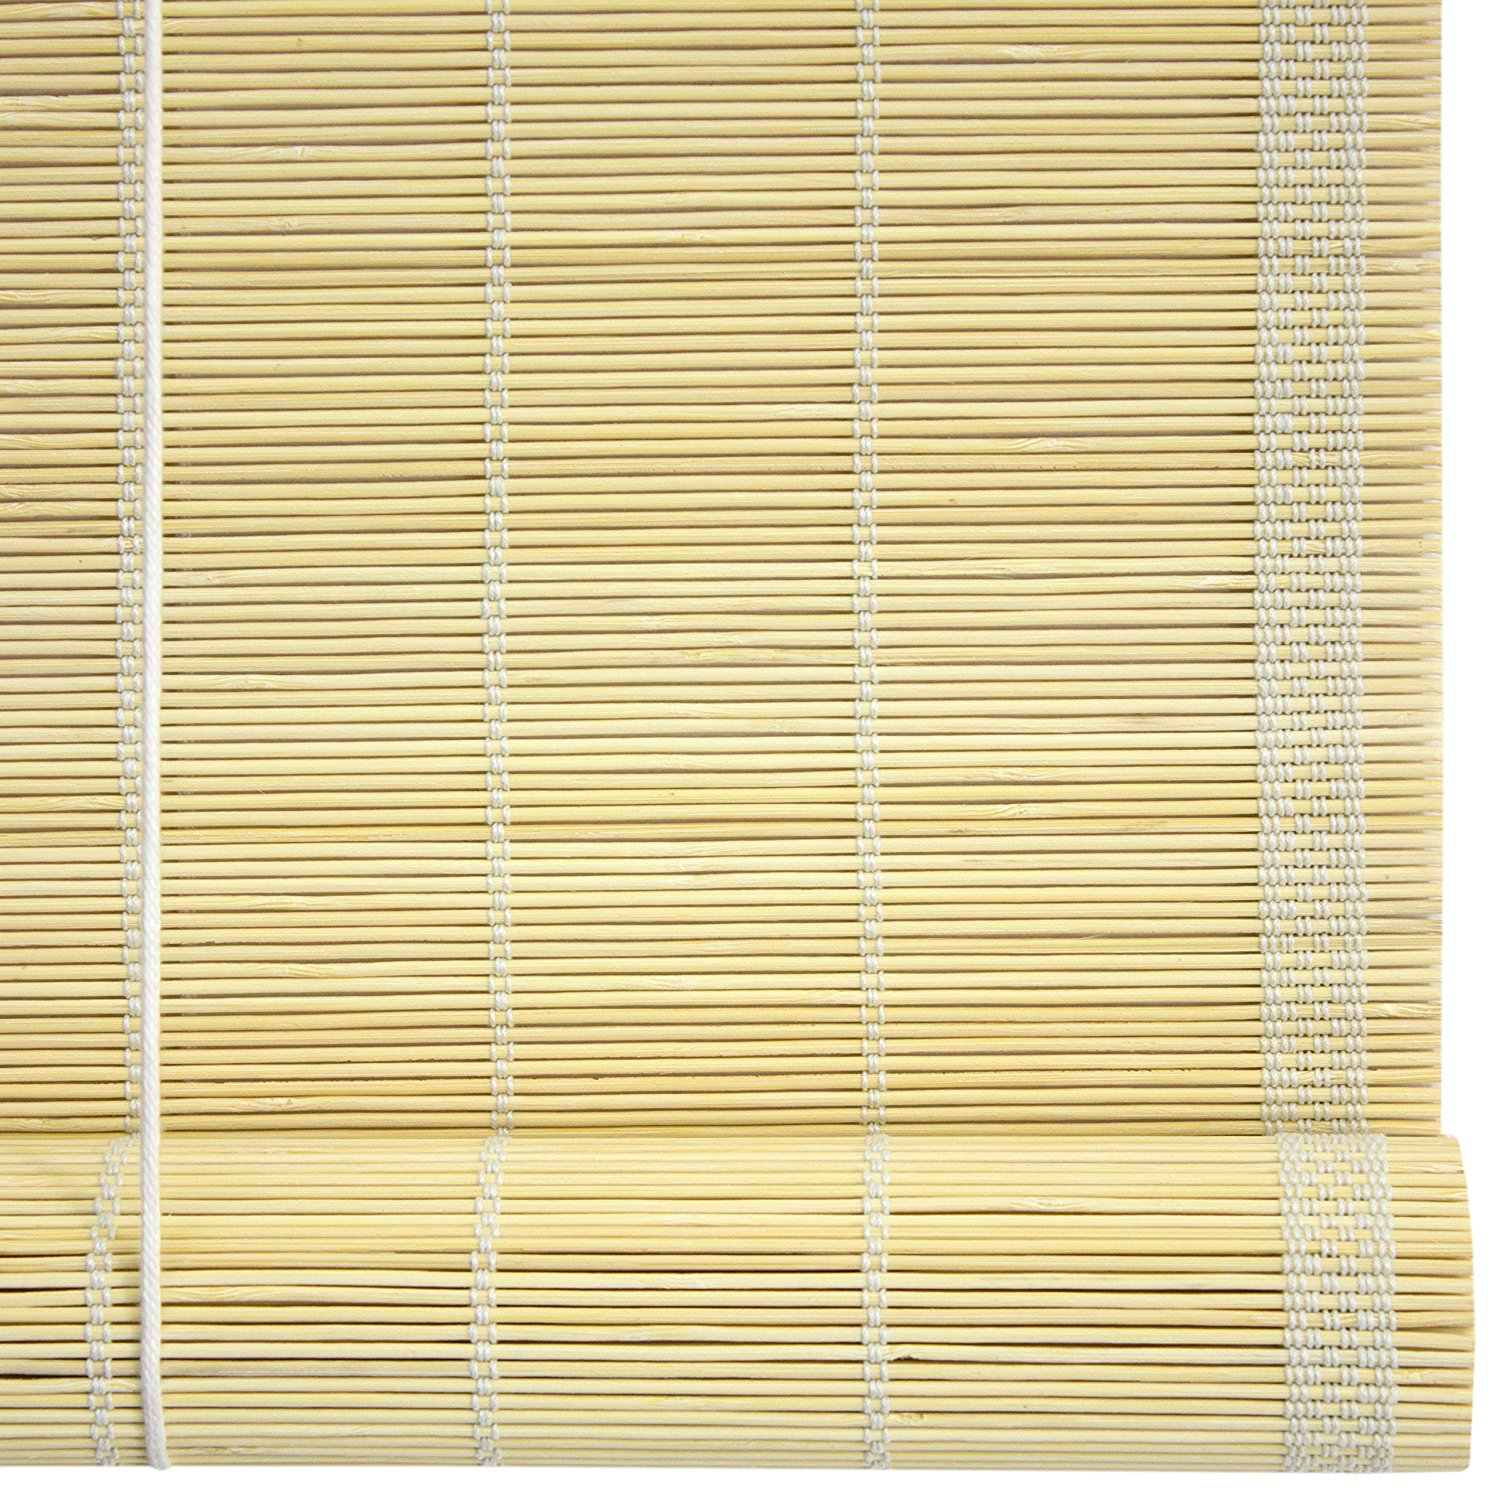 34 inch blinds ideas bedroom ikea velvet curtains matchstick blinds 34 inch blind curtain